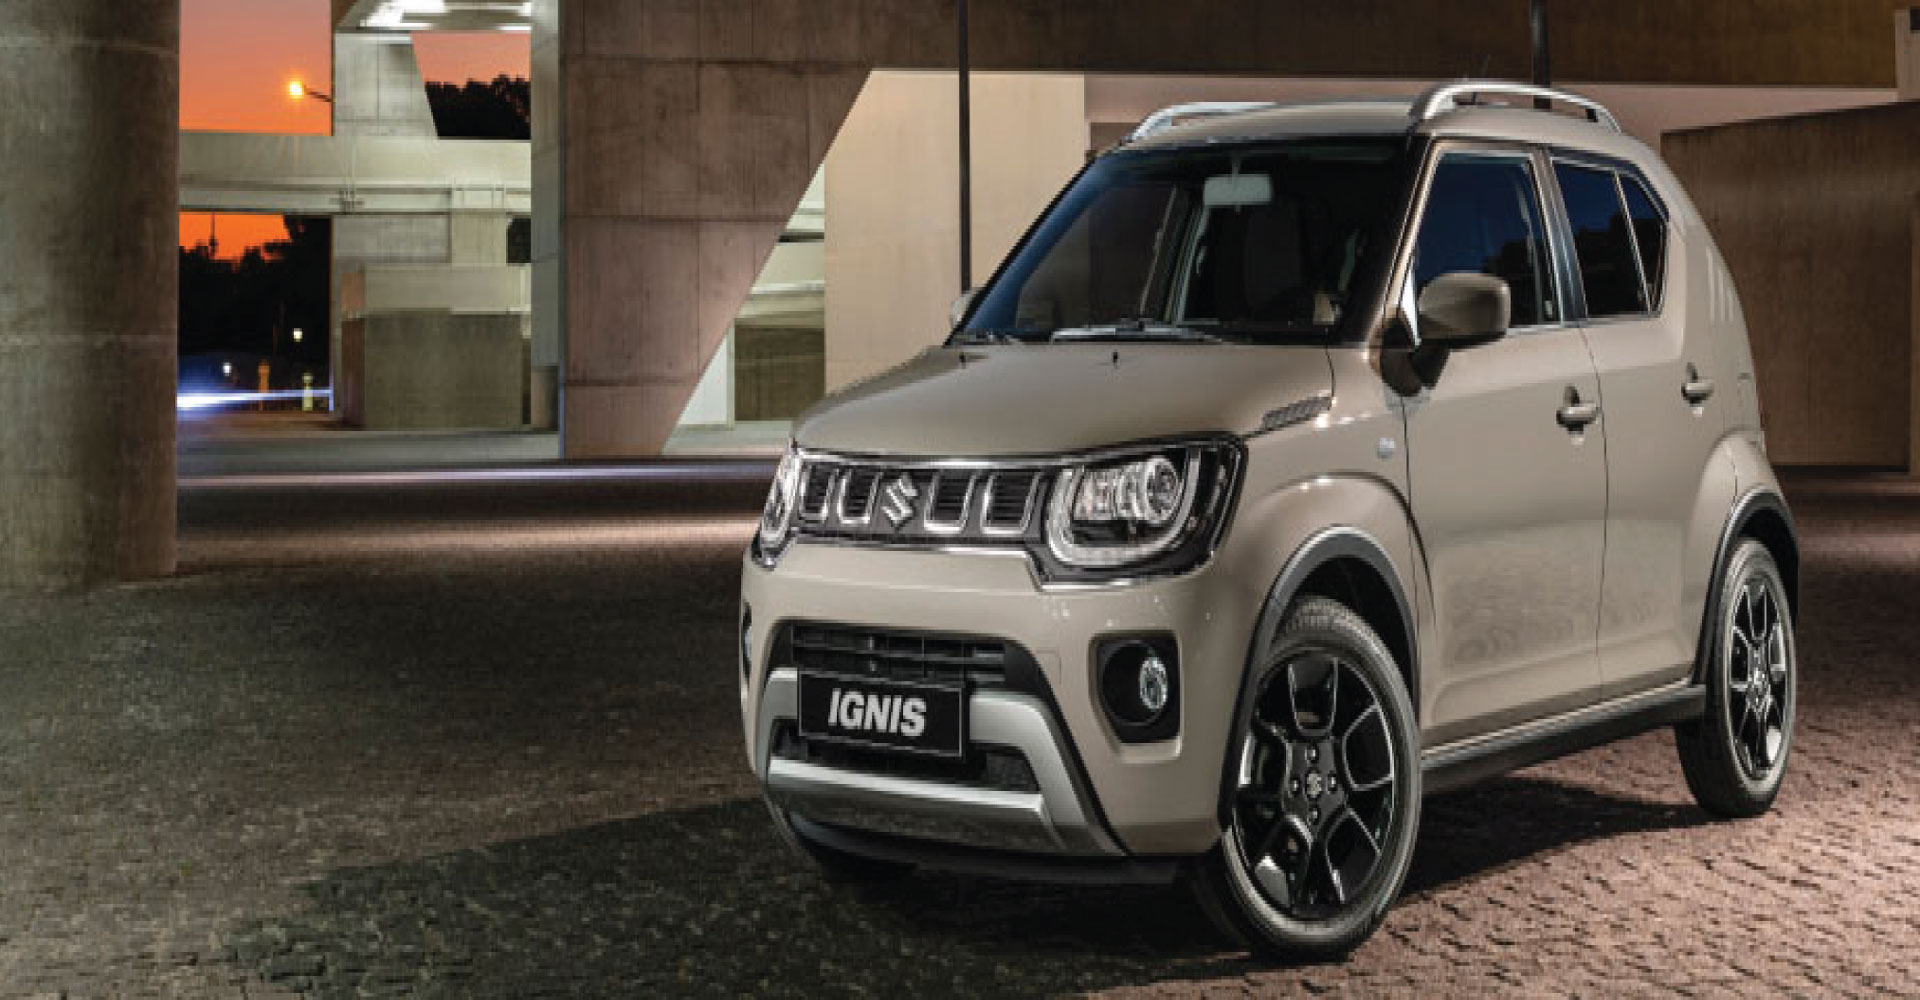 SUZUKI IGNIS | IN STOCK AND READY TO IGNITE YOUR SENSES